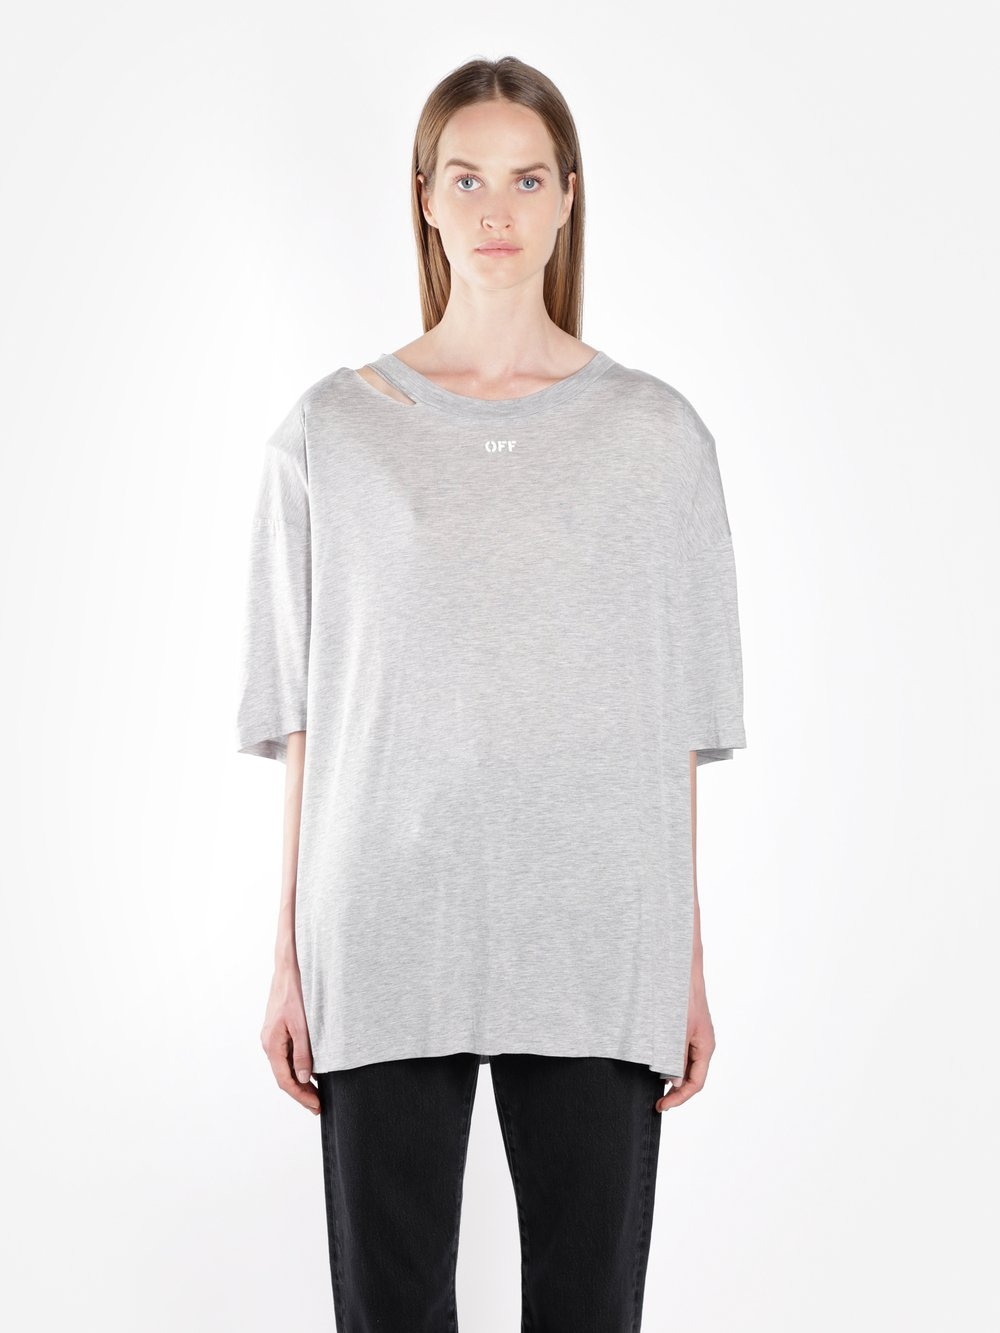 Off-White  OFF WHITE C/O VIRGIL ABLOH WOMEN'S GREY OFF SHOULDER PADS TEE